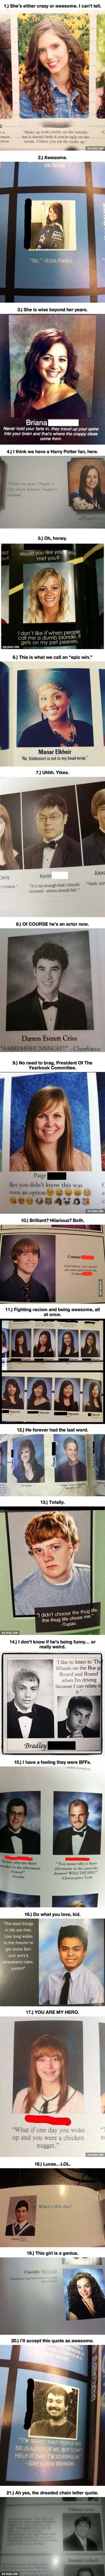 These 21 Students Left Totally Brilliant Quotes In Their Yearbooks. No One Will Forget Them!